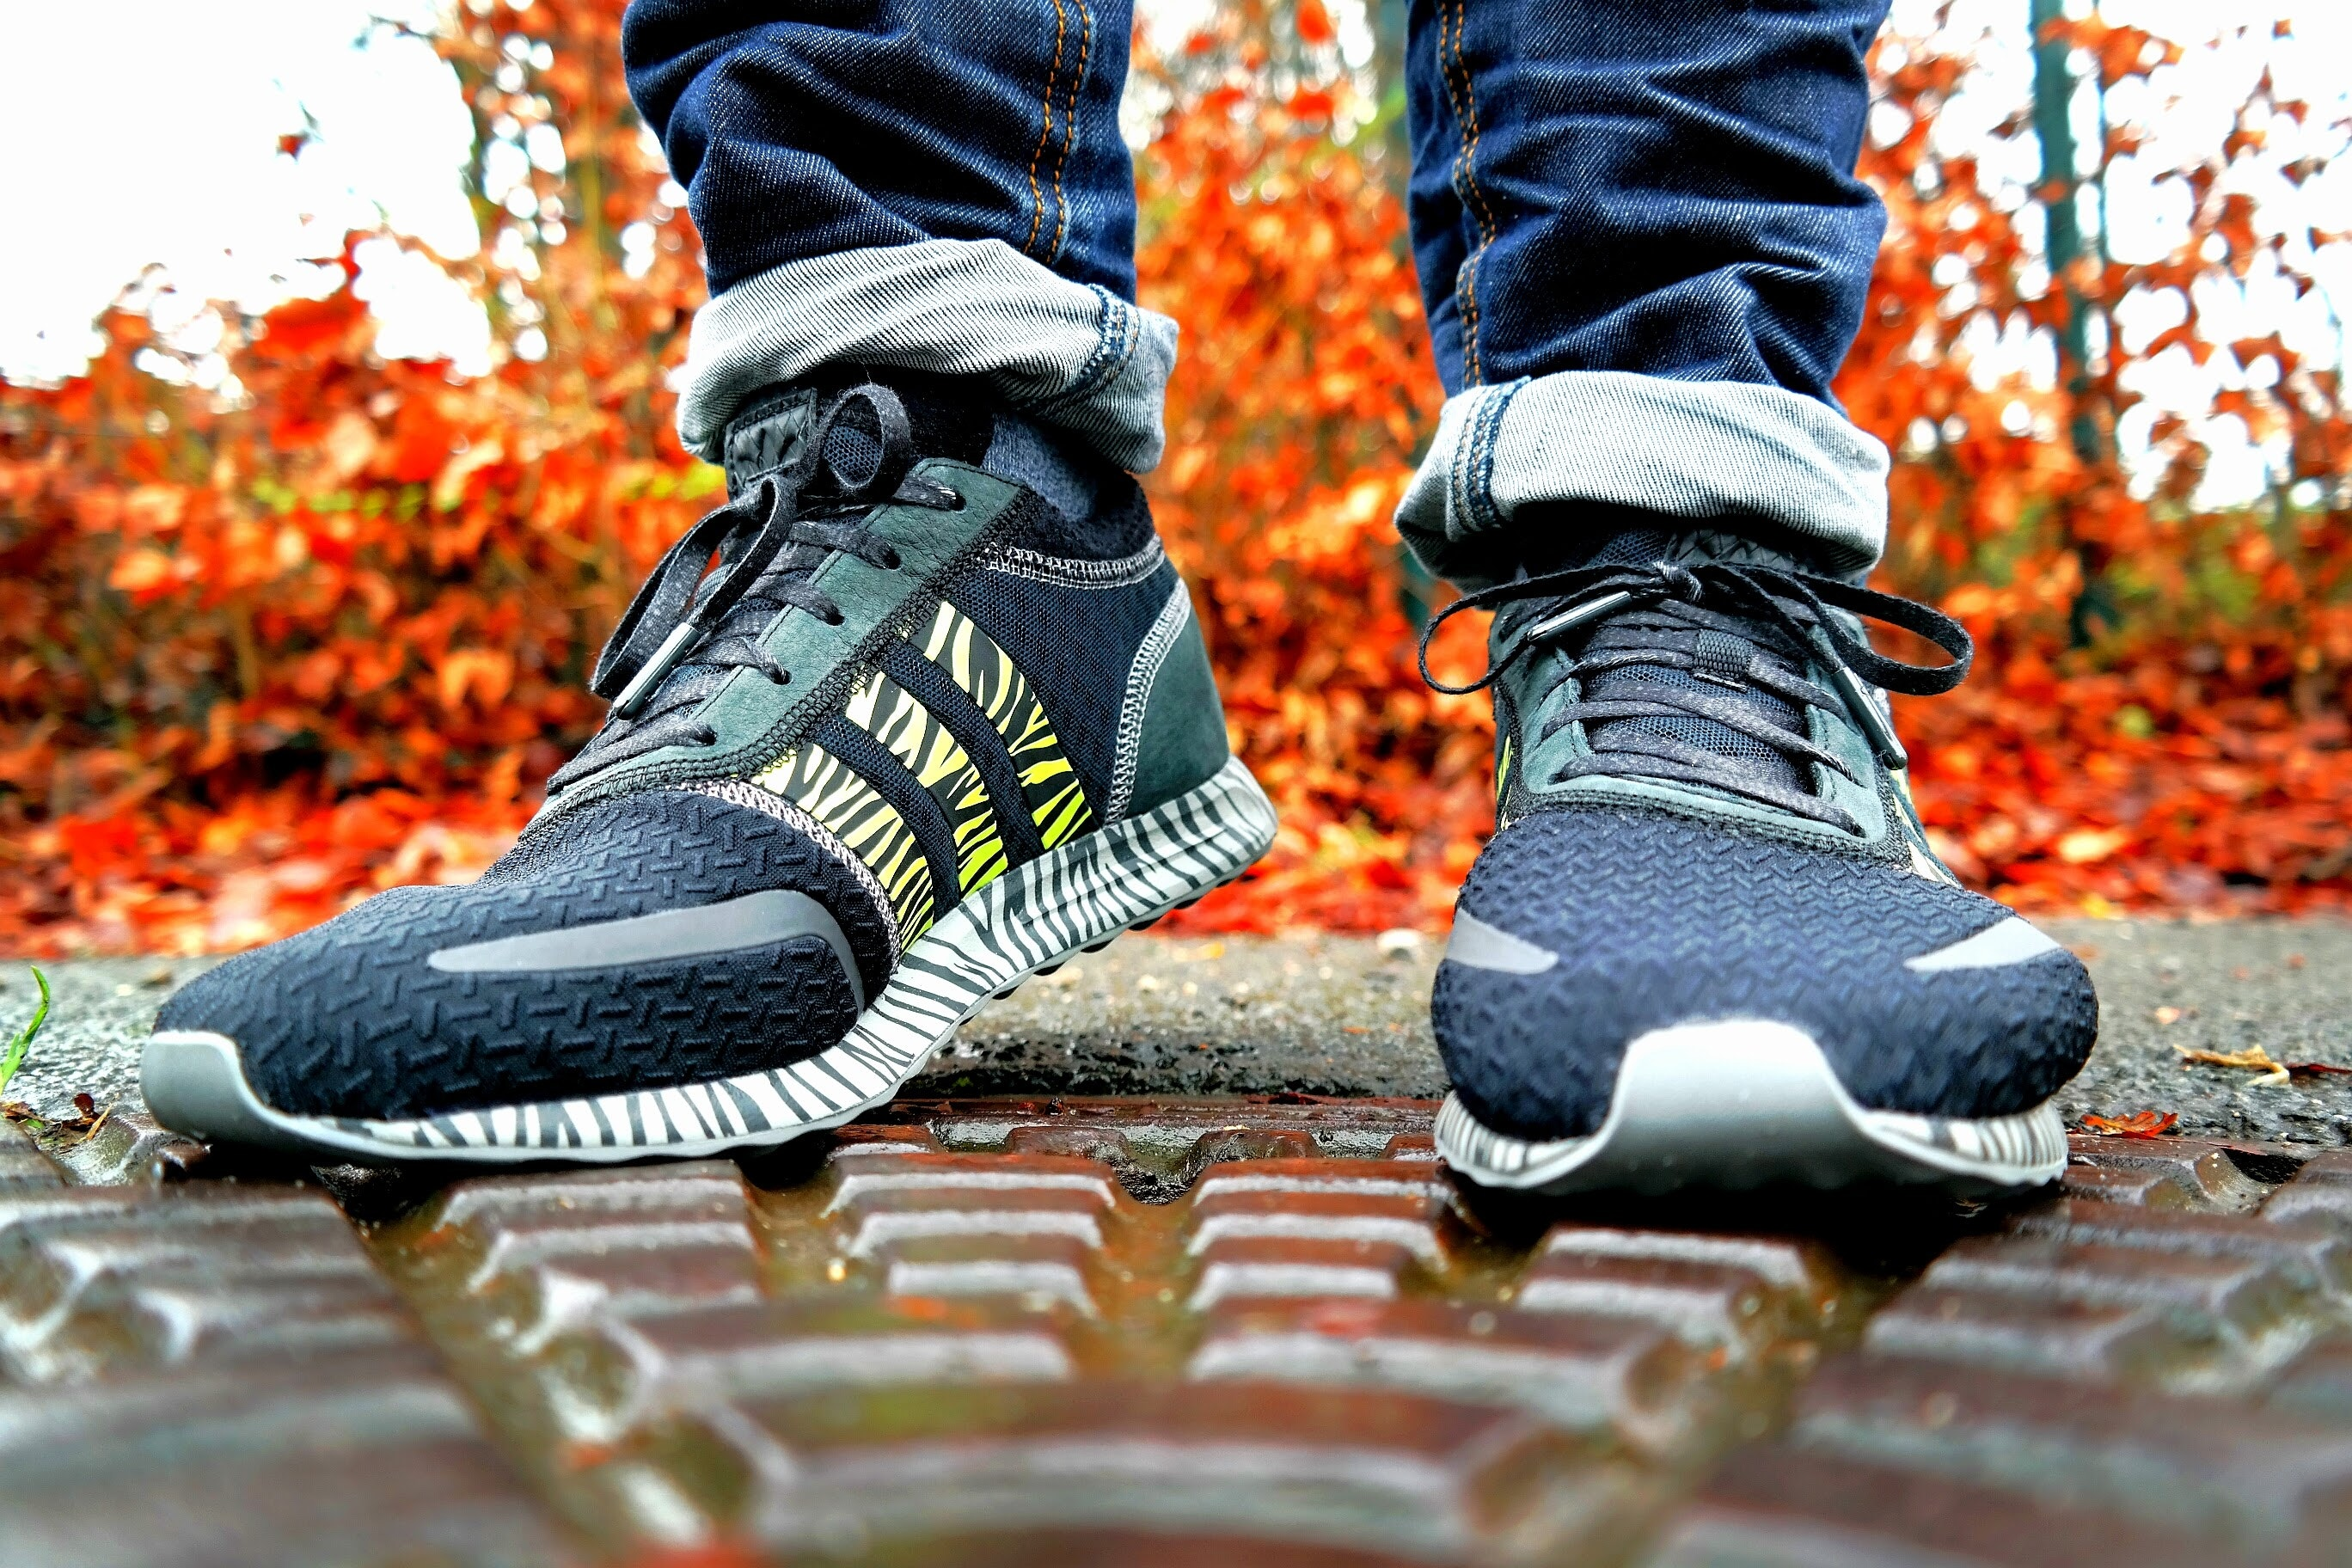 22a0a857f382e9 Shallow Focus Photography of Pair of Black Black-and-white Adidas ...